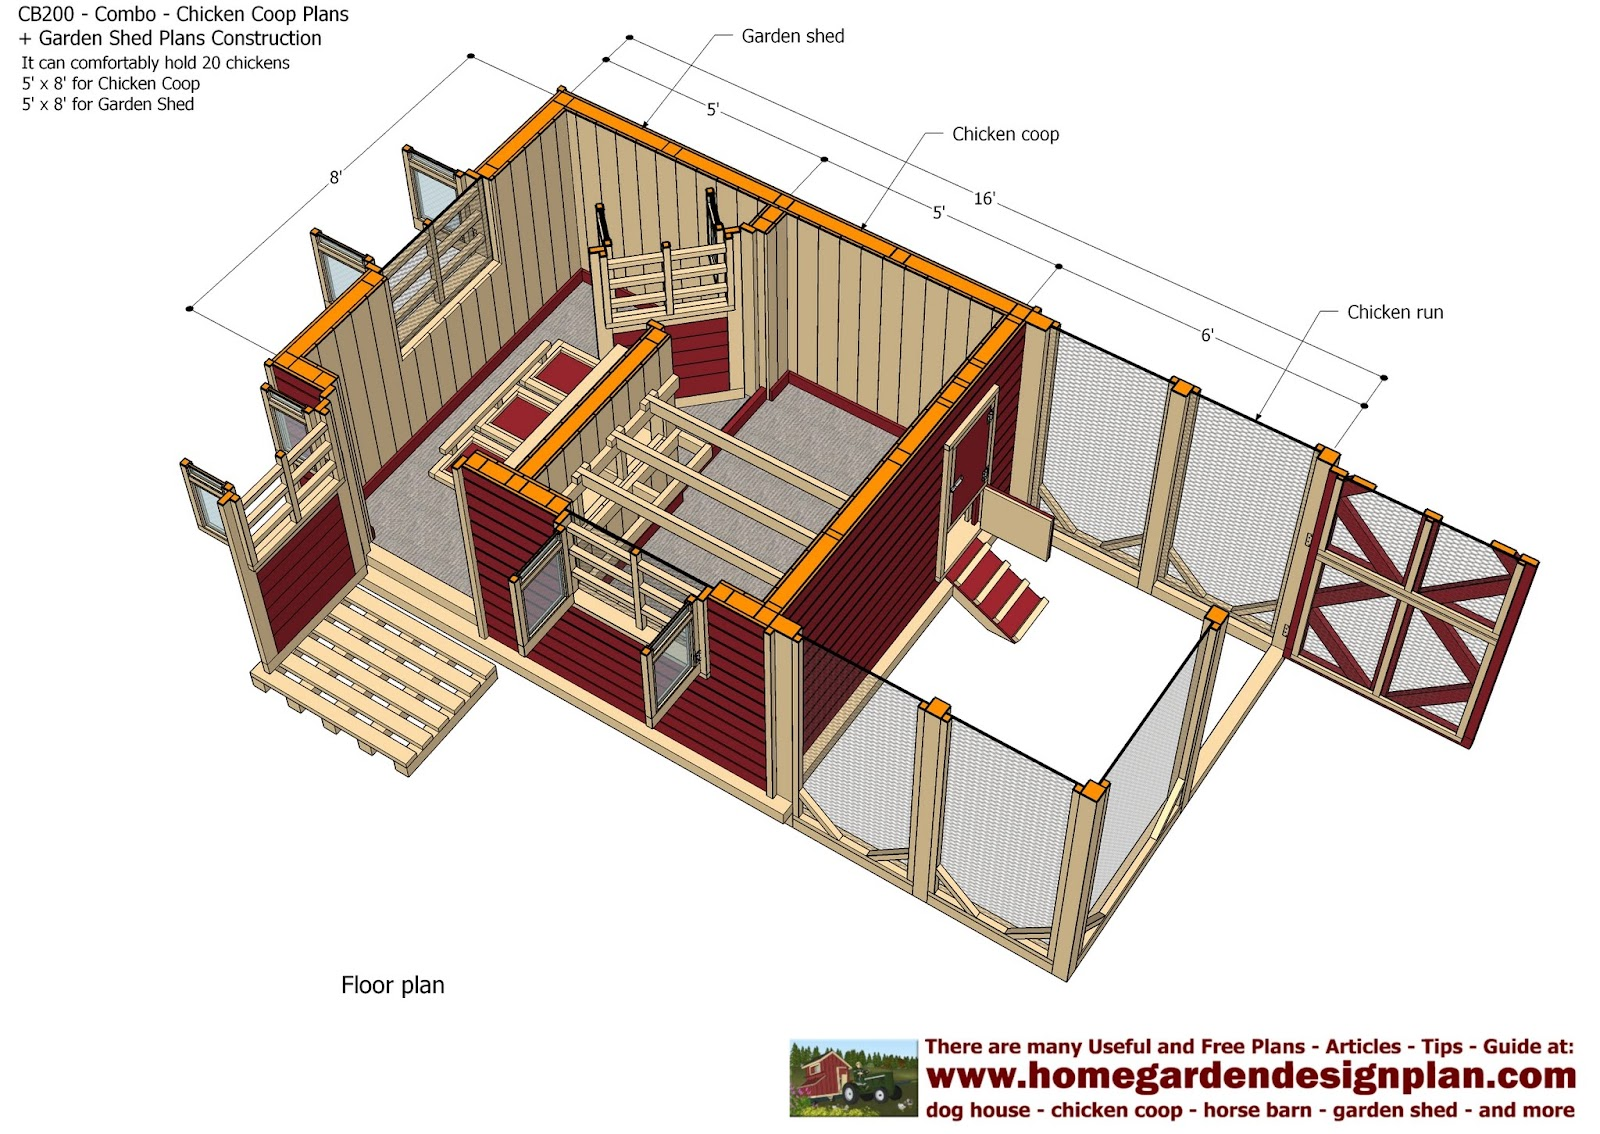 Home garden plans cb200 combo plans chicken coop for House barn combo plans